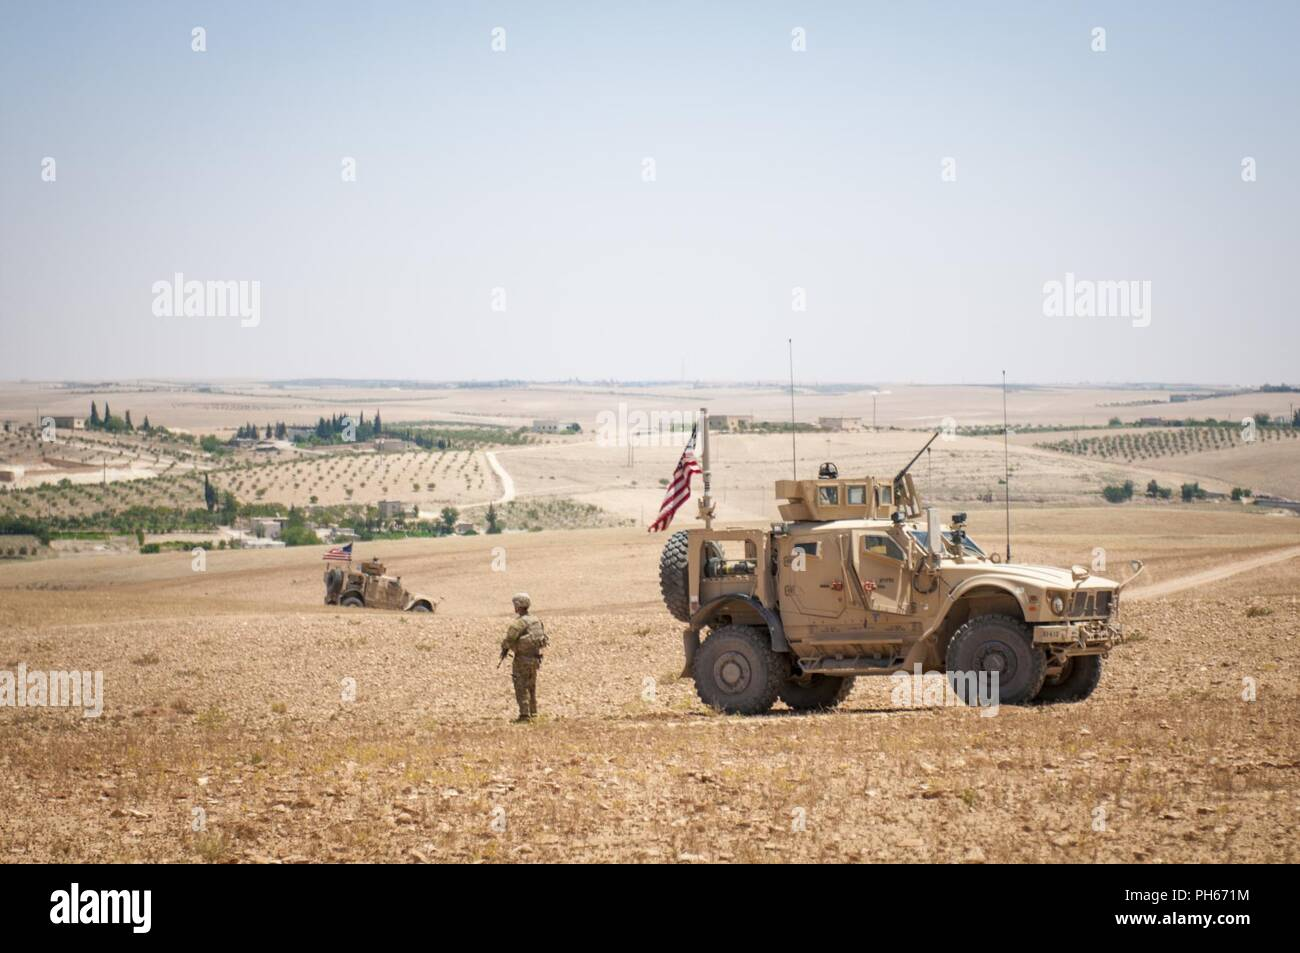 U.S. Soldiers provide security during a coordinated, independent patrol along the demarcation line in a village near Manbij, Syria, June 26, 2018. Turkish military and Coalition Forces recently began patrolling on each side of the line to ensure the safety and stability of the region. Stock Photo